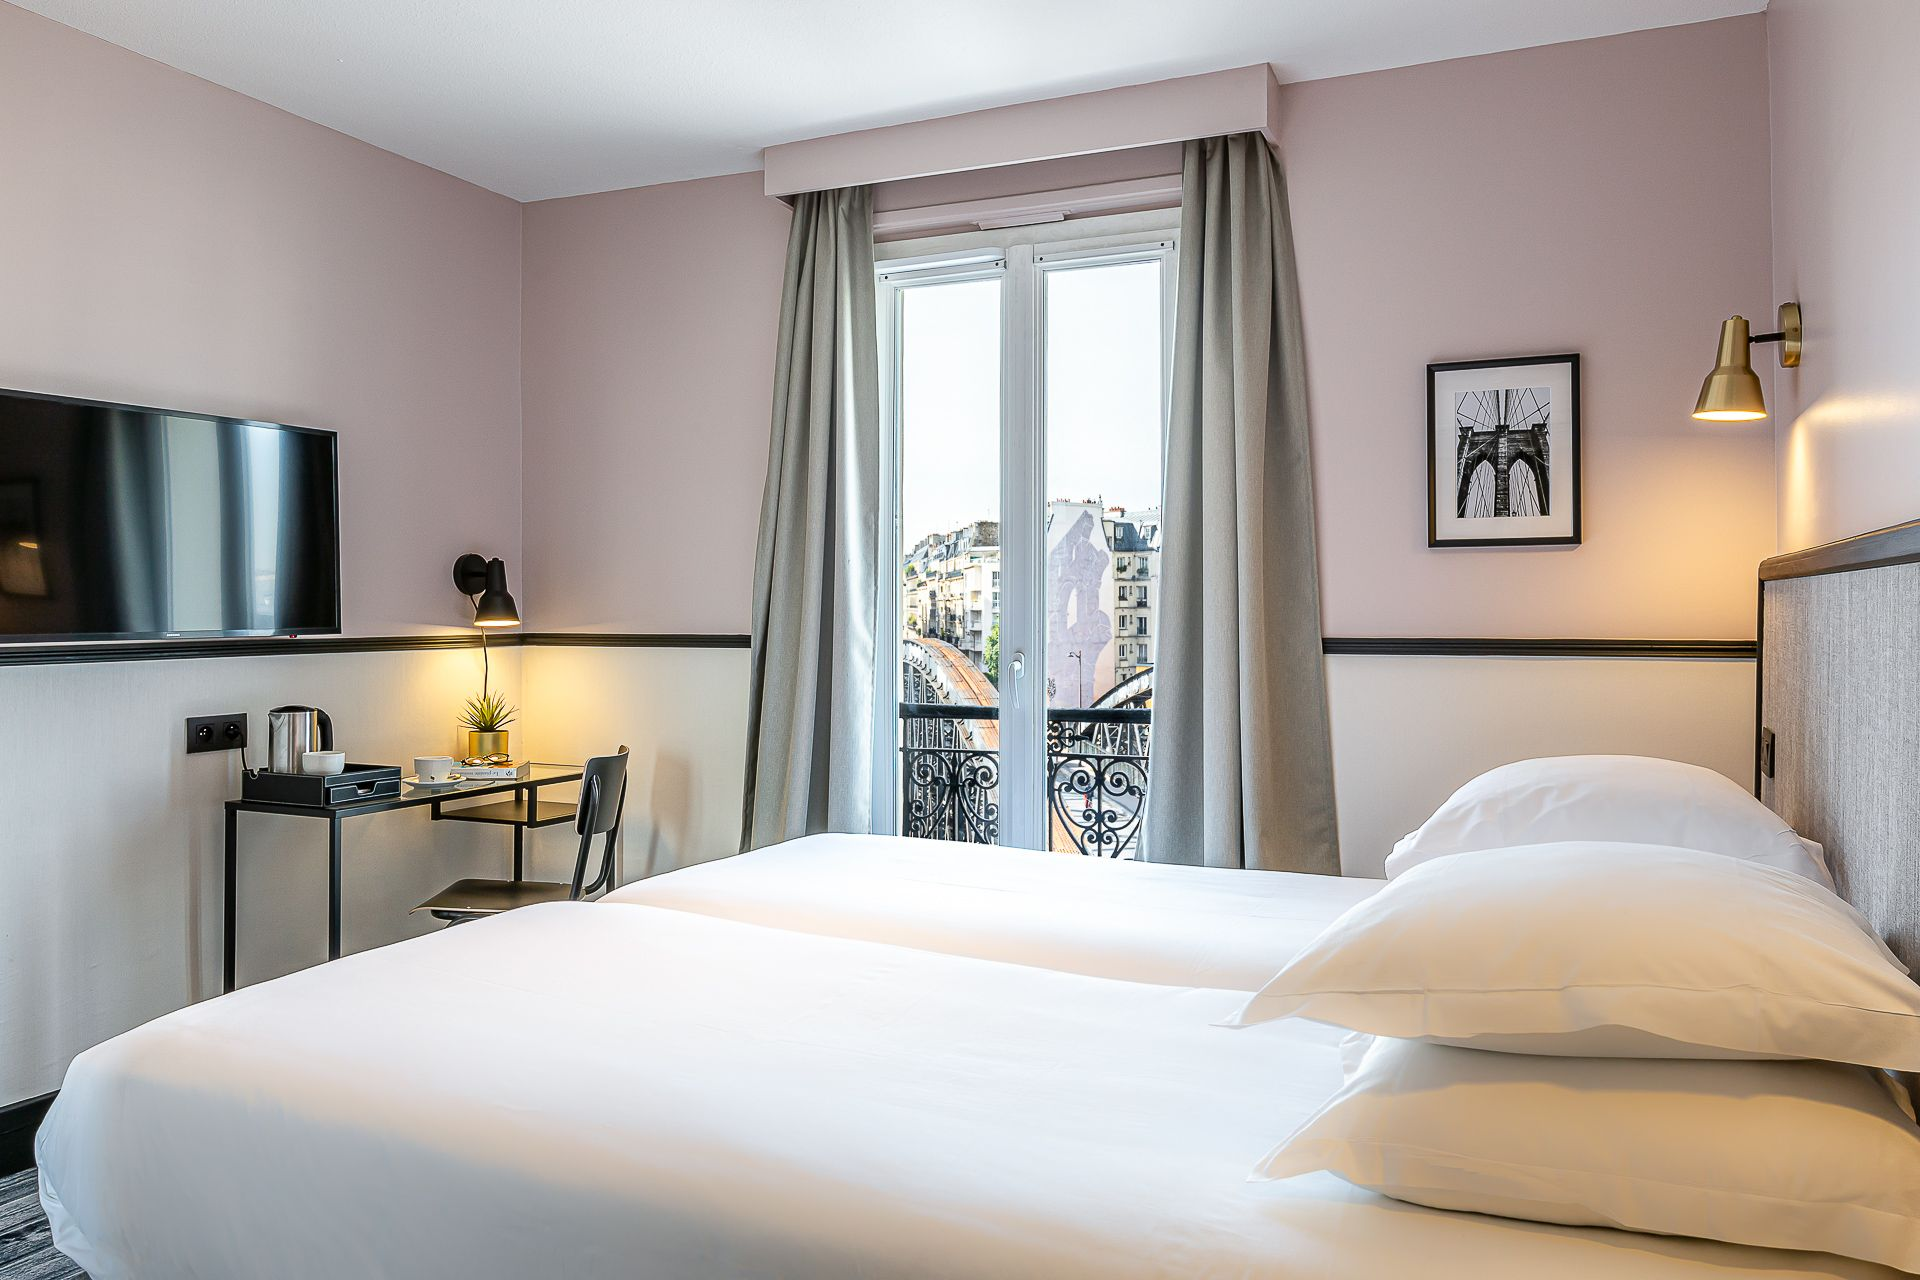 209/Chambres/Superieure/Hotel_AT_Gare_du_Nord_Superieure_23.jpg